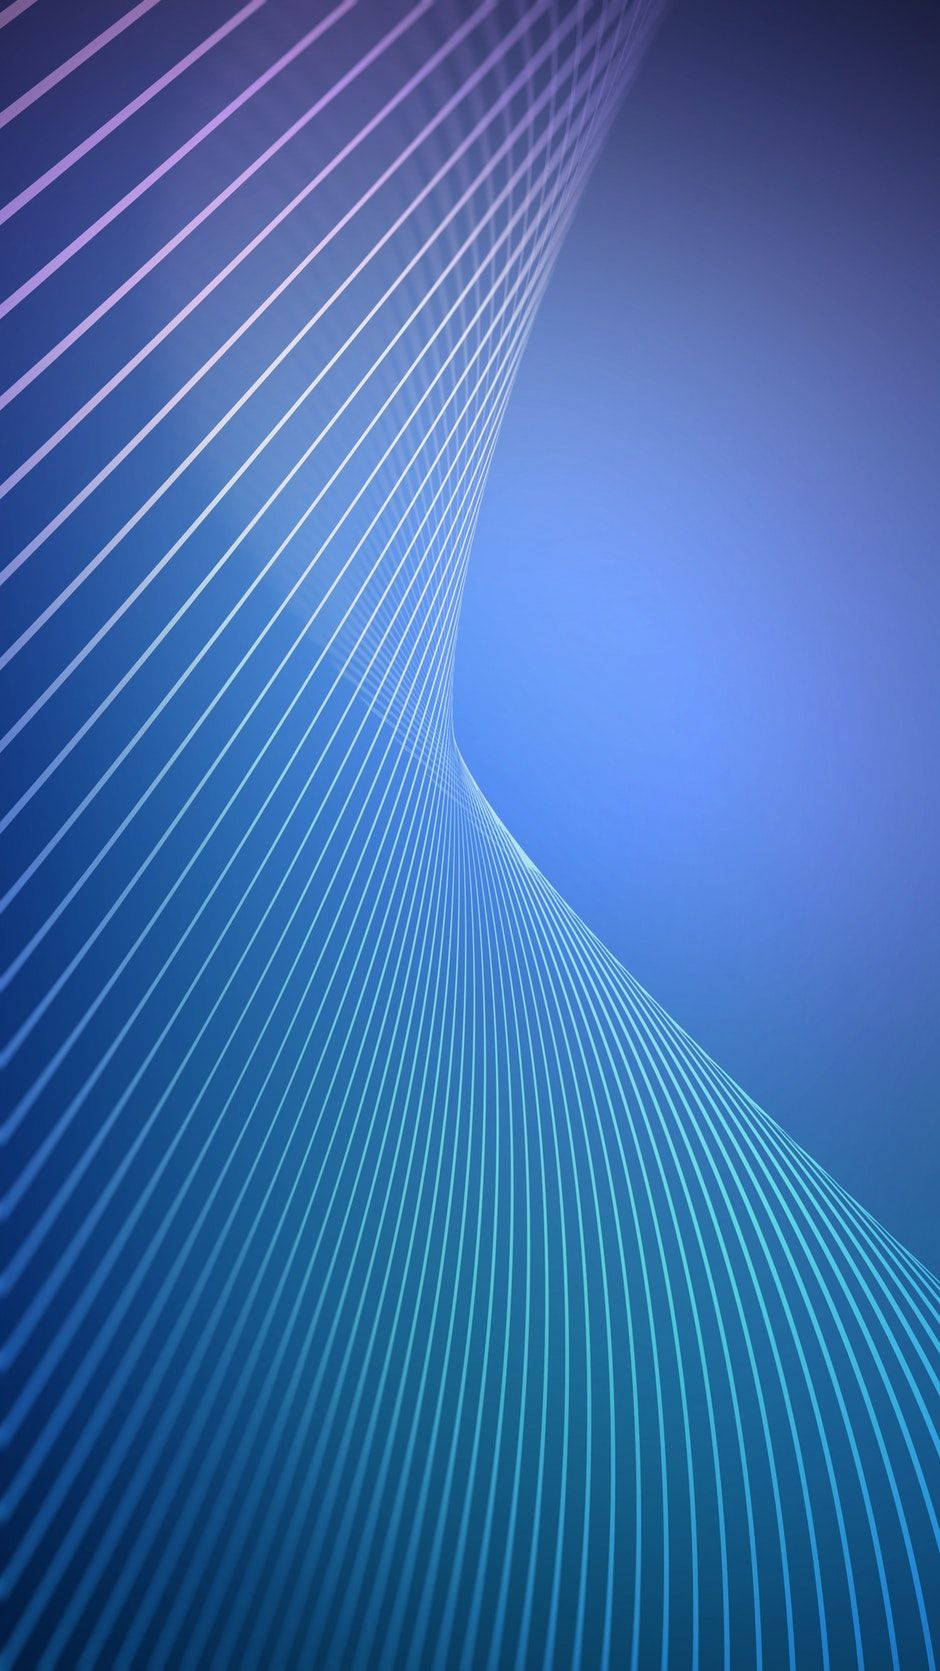 White and Blue Surface Illustration · Free Stock Photo